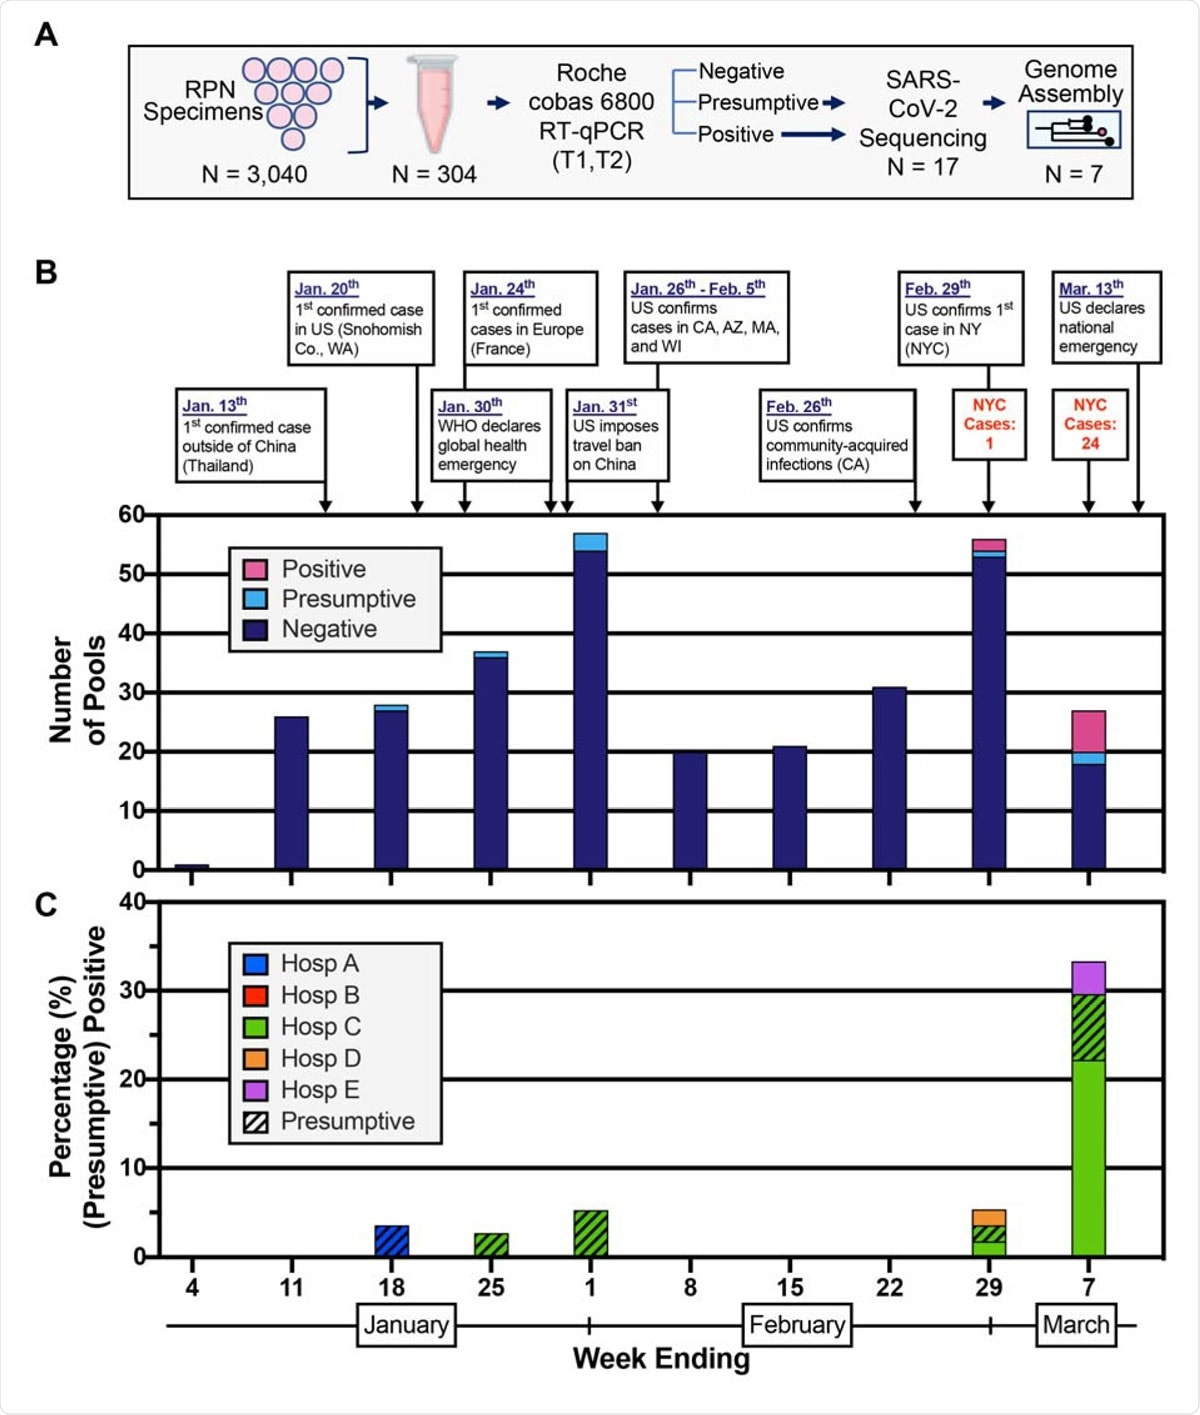 Detection of SARS-CoV-2 nucleic acids in nasopharyngeal specimens collected in the first ten weeks of 2020. (A) Schematic representation of the study design. Nasopharyngeal swab specimens that tested negative for respiratory pathogens (RPN) were pooled. Each pool consisted of 10 specimens from the same week from one of five hospital sites. Nucleic acid amplification testing (NAAT) was performed and RNA was processed for SARS-CoV-2 genome assembly. (B) Select events and responses to the evolving SARS-CoV-2 pandemic are annotated over the timeframe surveyed. Confirmed cases in NYC for the last two weeks are noted. Absolute counts of pools that tested positive, presumptive positive, and negative by RT-PCR are depicted by week collected. (C) Distribution of positive (solid) and presumptive positive (hatched) pools across the five different hospital sites in NYC.